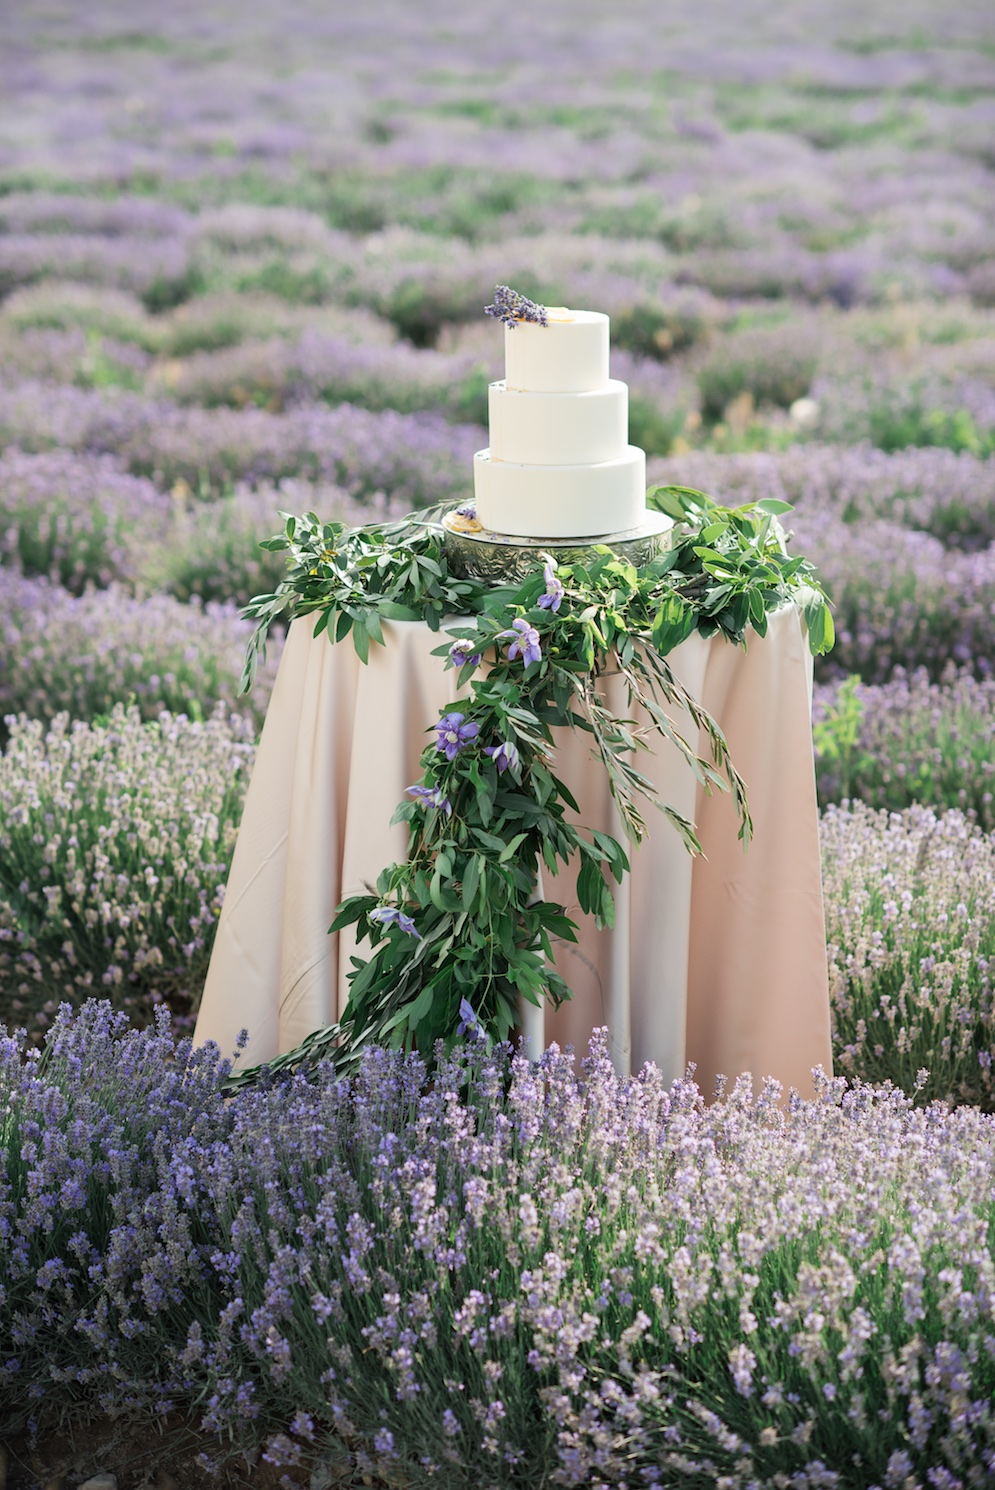 South of France Wedding, lavender wedding cake inspiration, lavender wedding cake ideas, wedding flowers utah calie rose